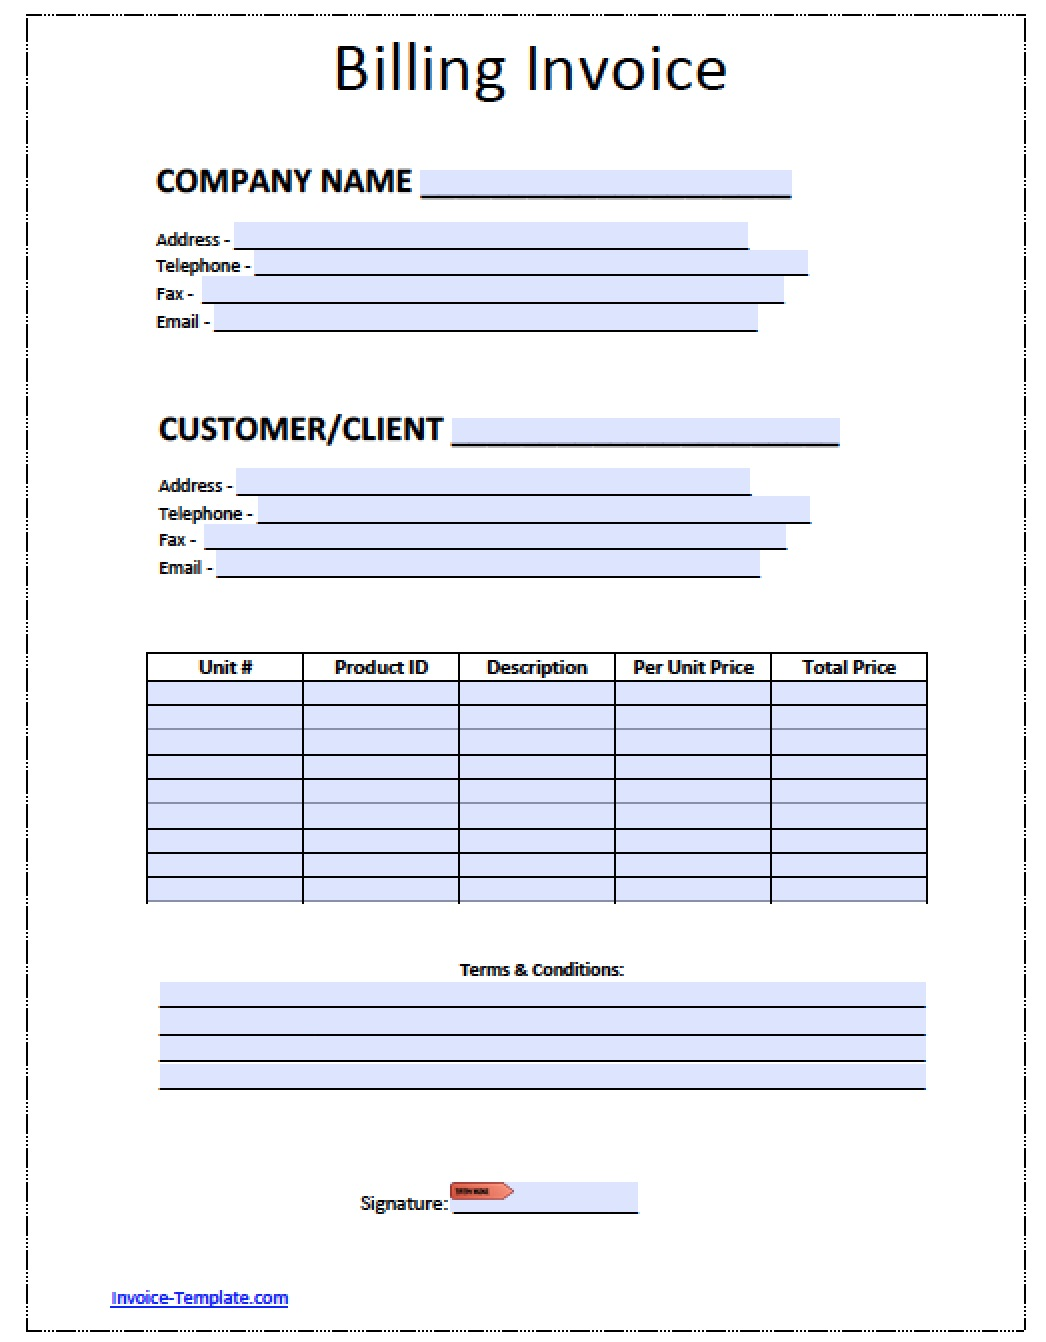 Carsforlessus  Pleasant Billing Invoice Invoices Faq U Cloudflare Support Billing  With Magnificent Free Billing Invoice Template  Excel  Pdf  Word Doc  Billing With Amazing Freelance Invoice Example Also Business Invoicing In Addition Car Repair Invoice Template And Insurance Invoice As Well As Dealer Invoice Price Definition Additionally Invoice Pricing For New Cars From Happytomco With Carsforlessus  Magnificent Billing Invoice Invoices Faq U Cloudflare Support Billing  With Amazing Free Billing Invoice Template  Excel  Pdf  Word Doc  Billing And Pleasant Freelance Invoice Example Also Business Invoicing In Addition Car Repair Invoice Template From Happytomco